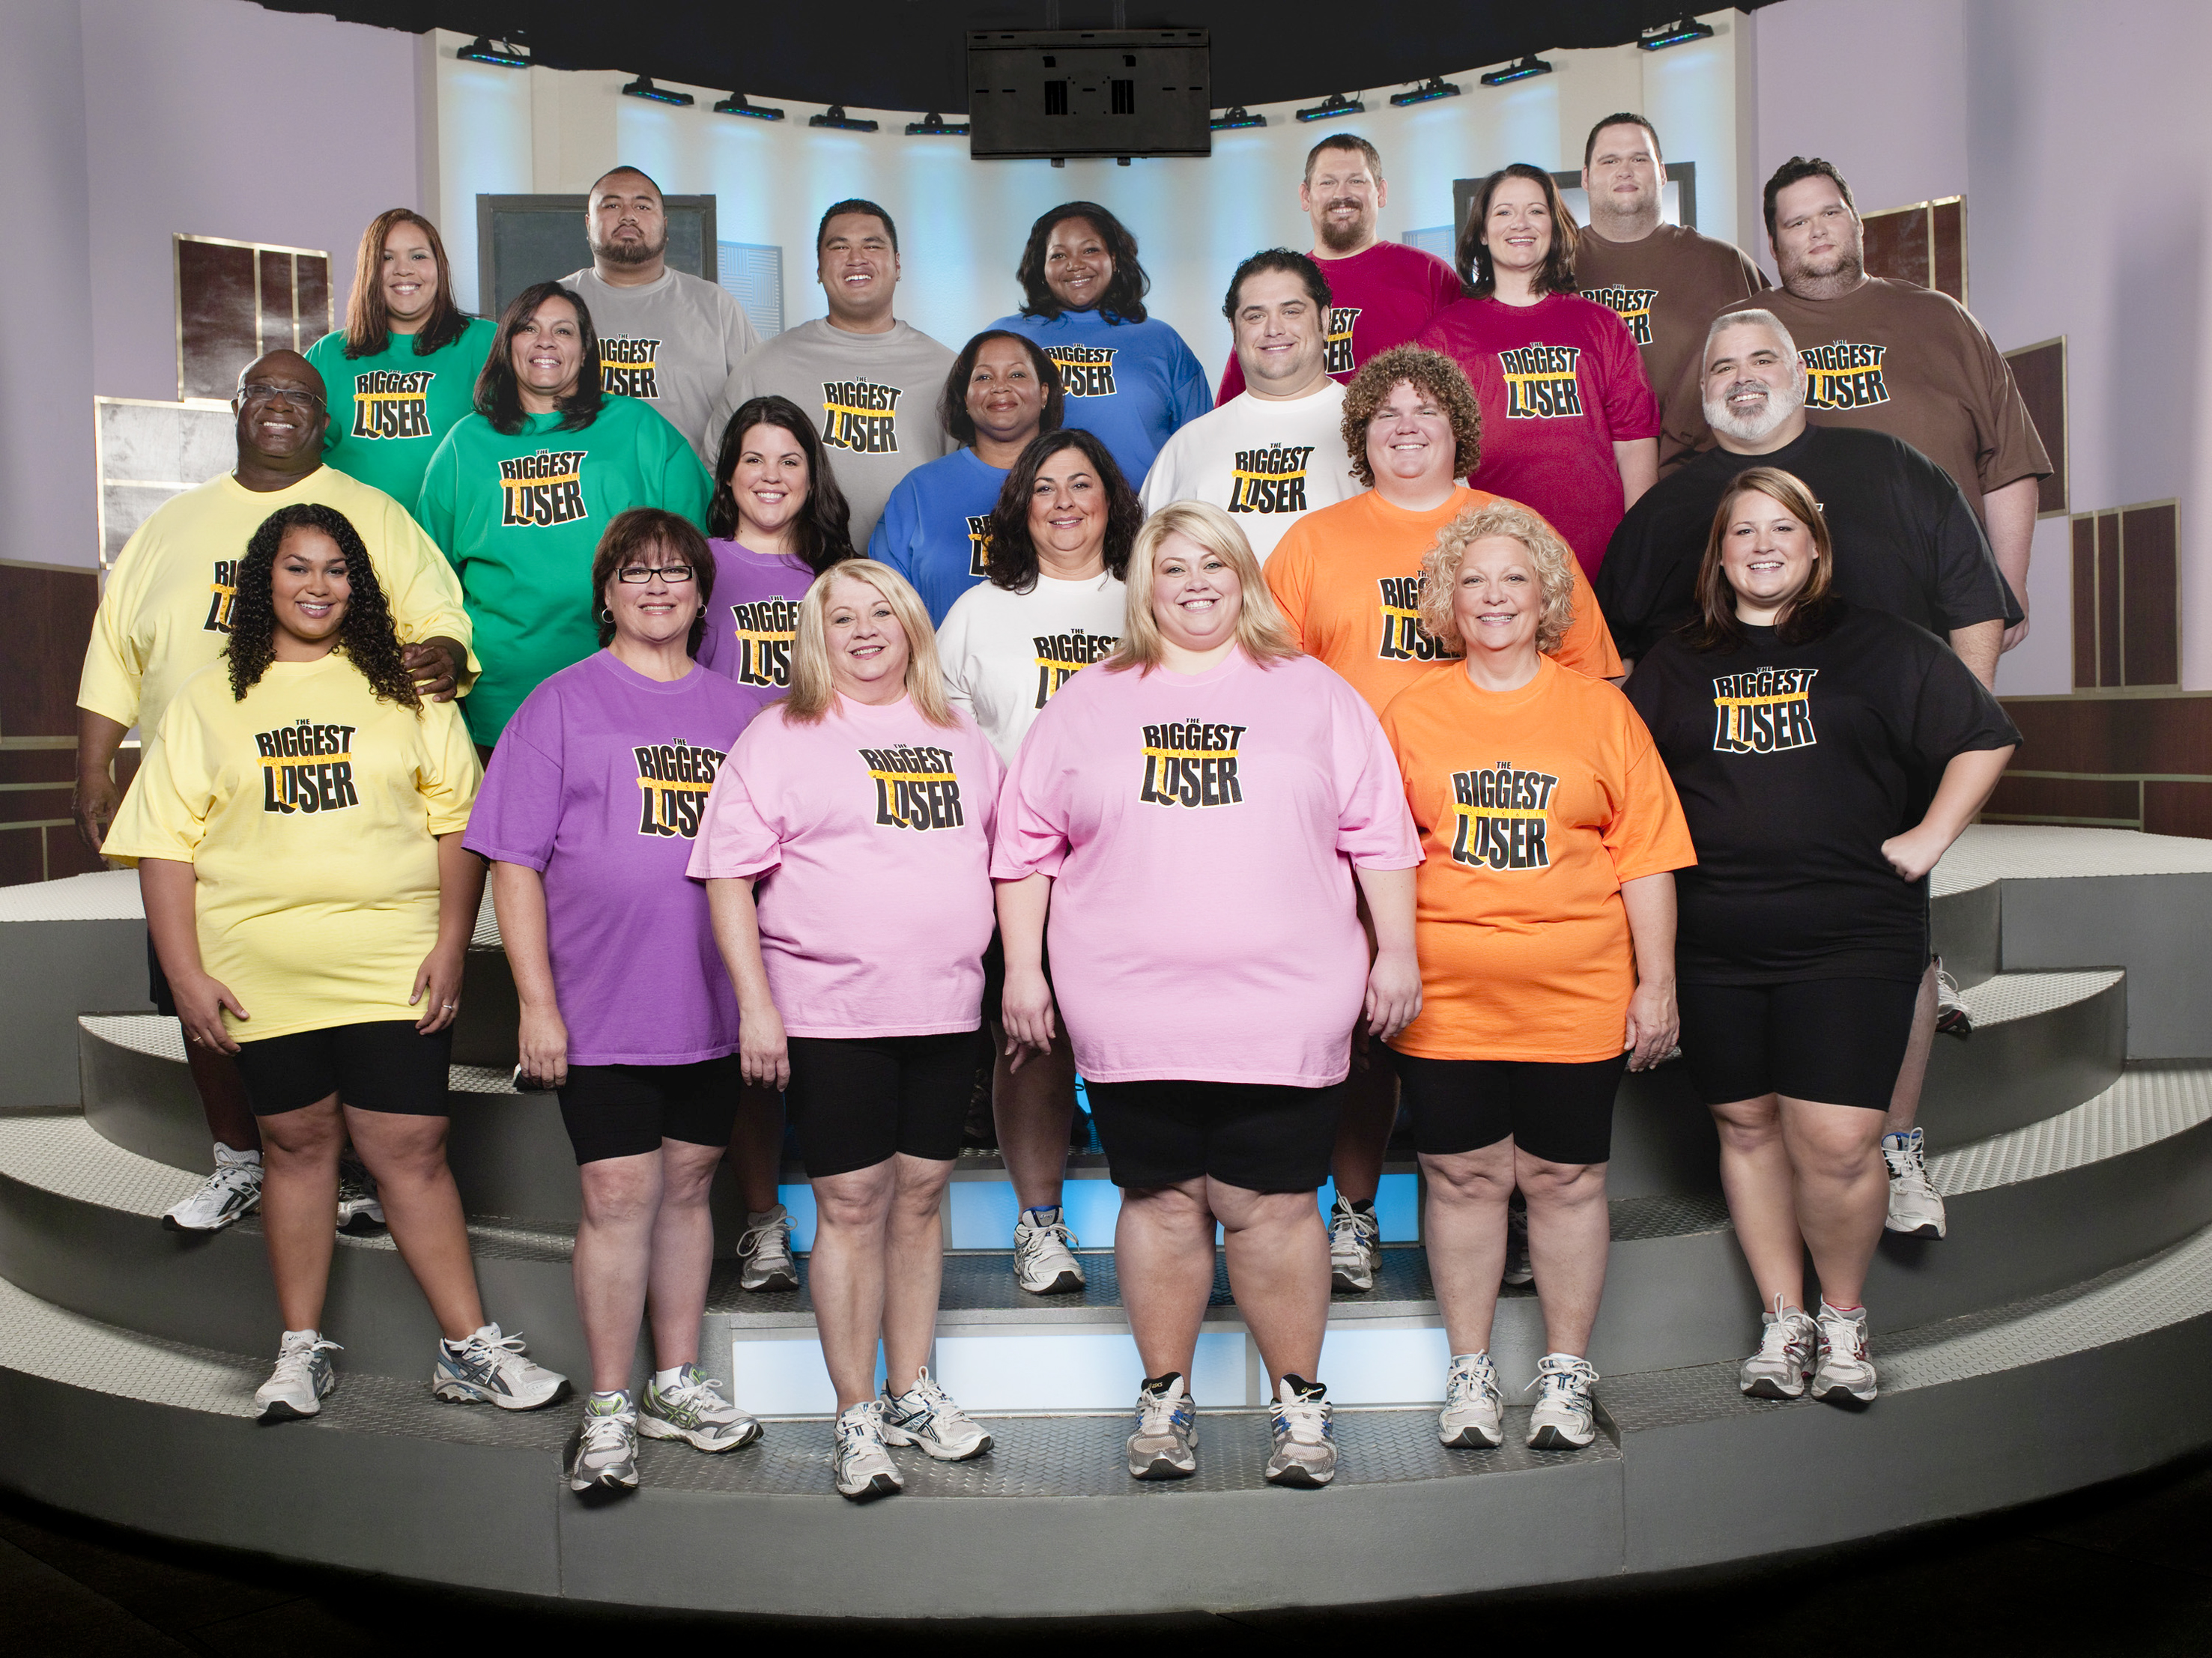 Interesting. biggest loser contestants pity, that